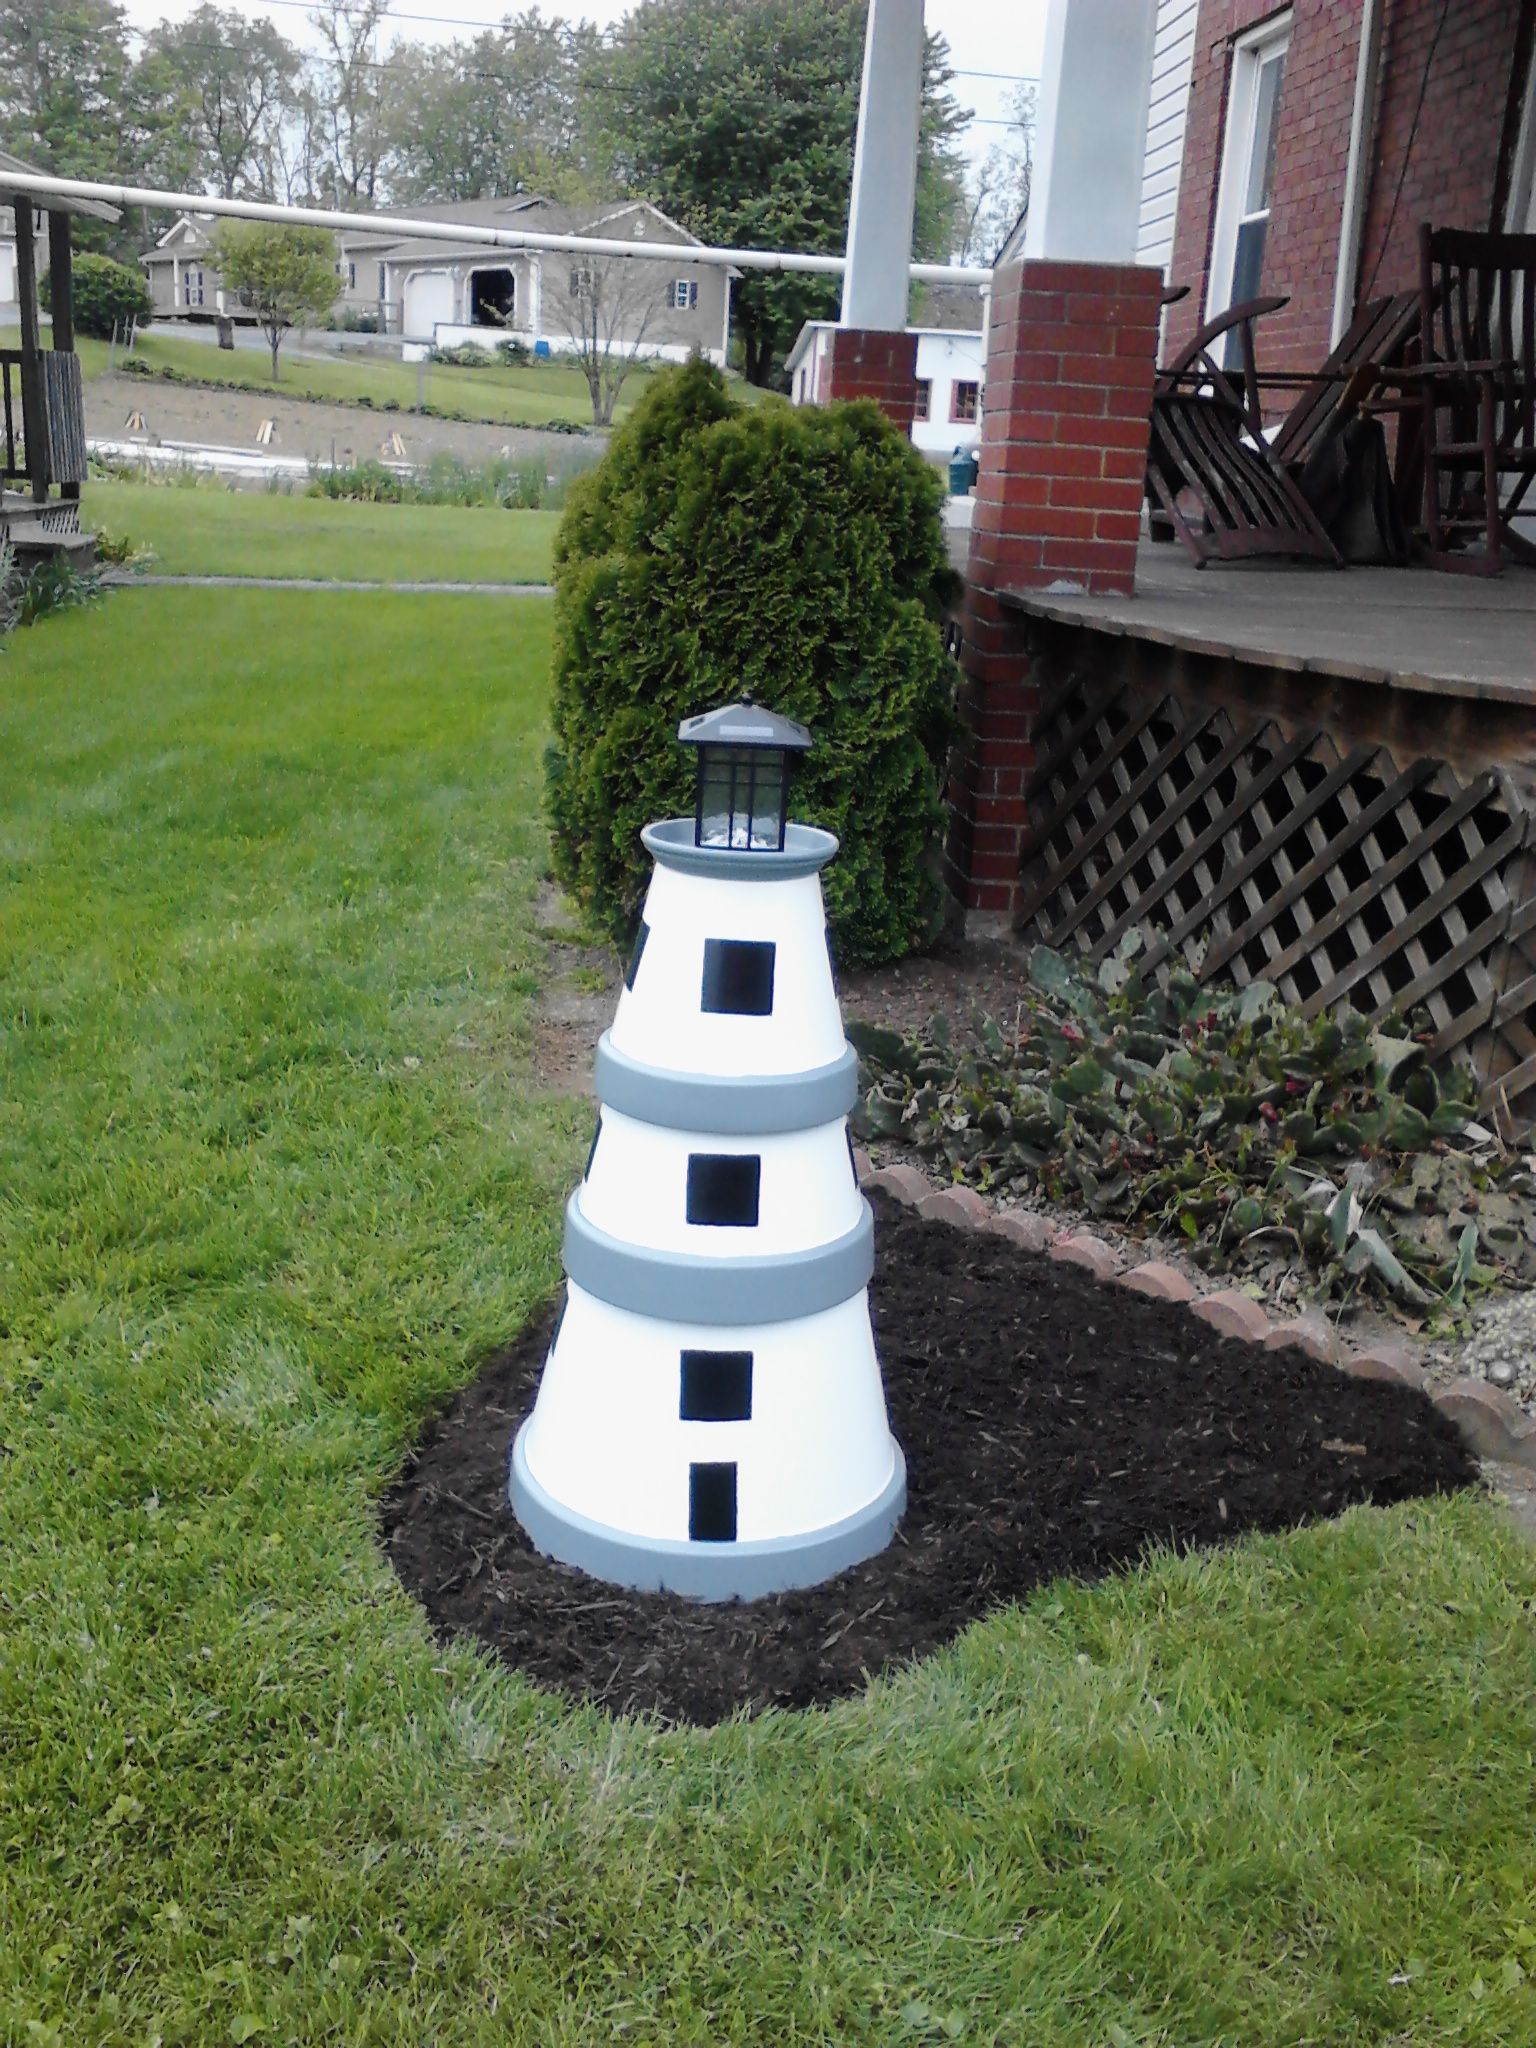 Covering Up The Well Casing With A Lighthouse For Gerri